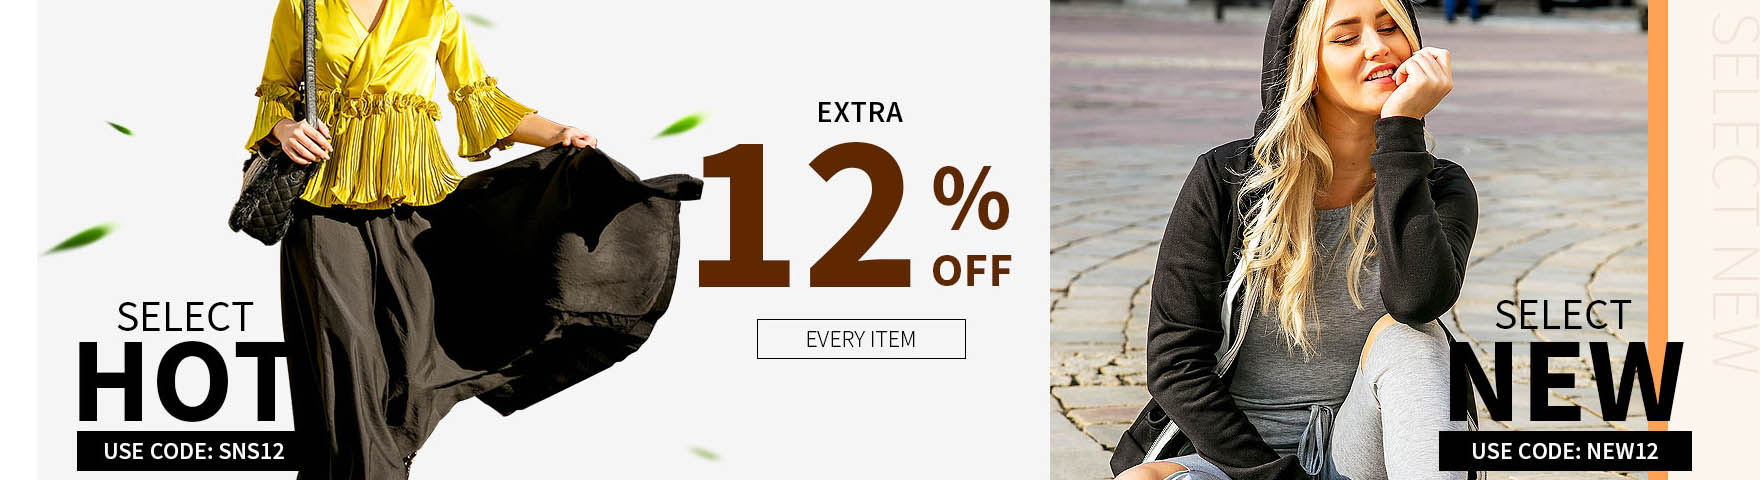 2020 Every Item Extra 12% Off CODE: new12, Shop Now!